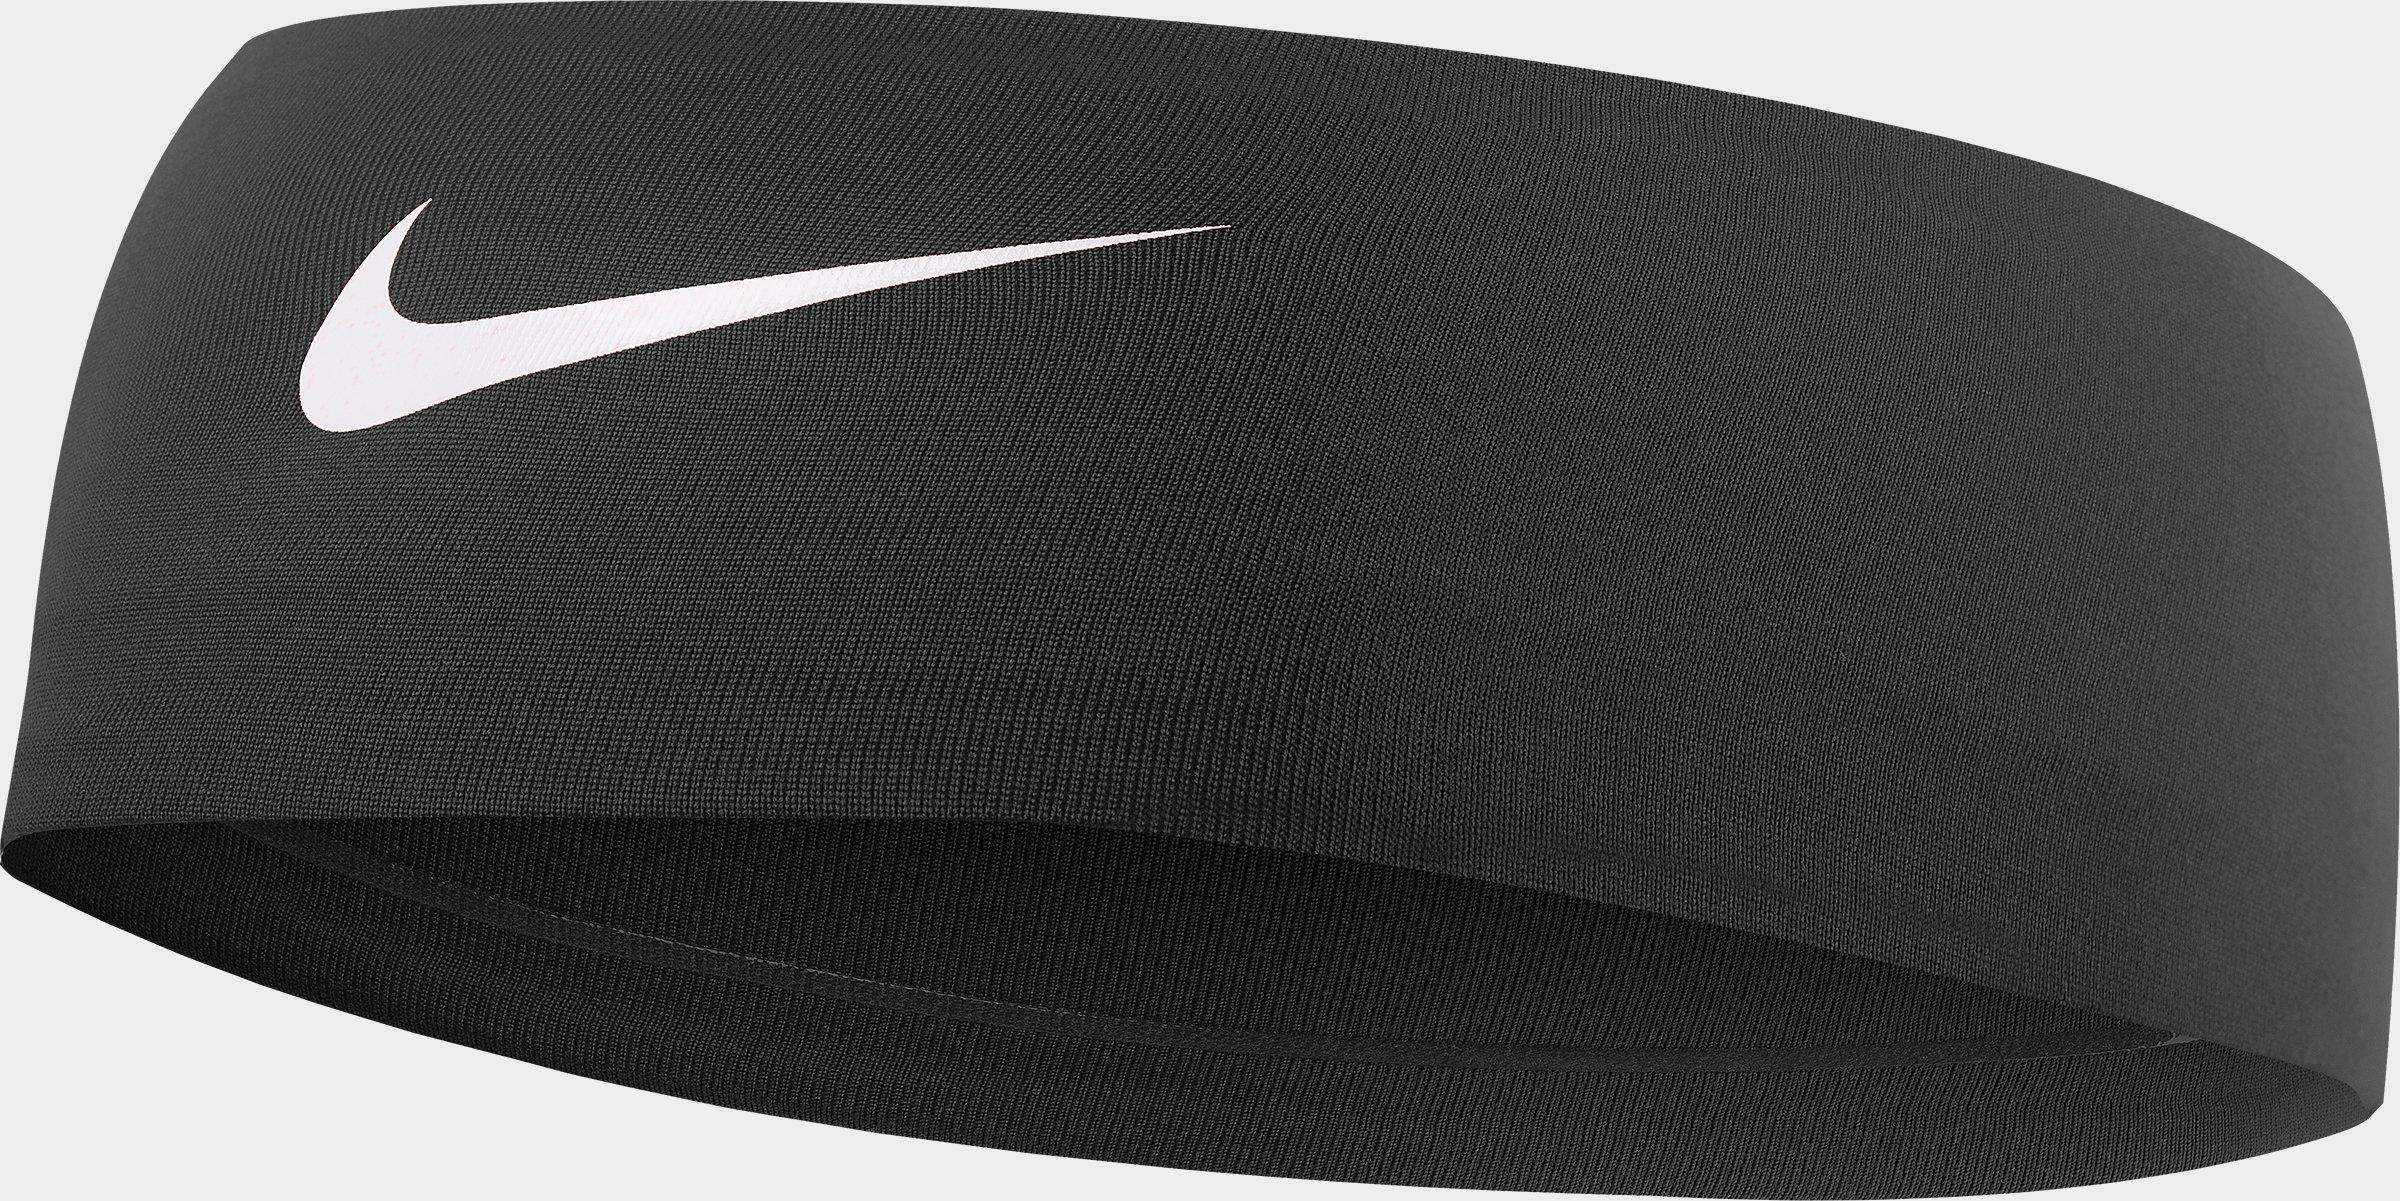 Nike Hairbands Womens Ladies Head Bands 3 Pack White Black Pink Sports Brand New